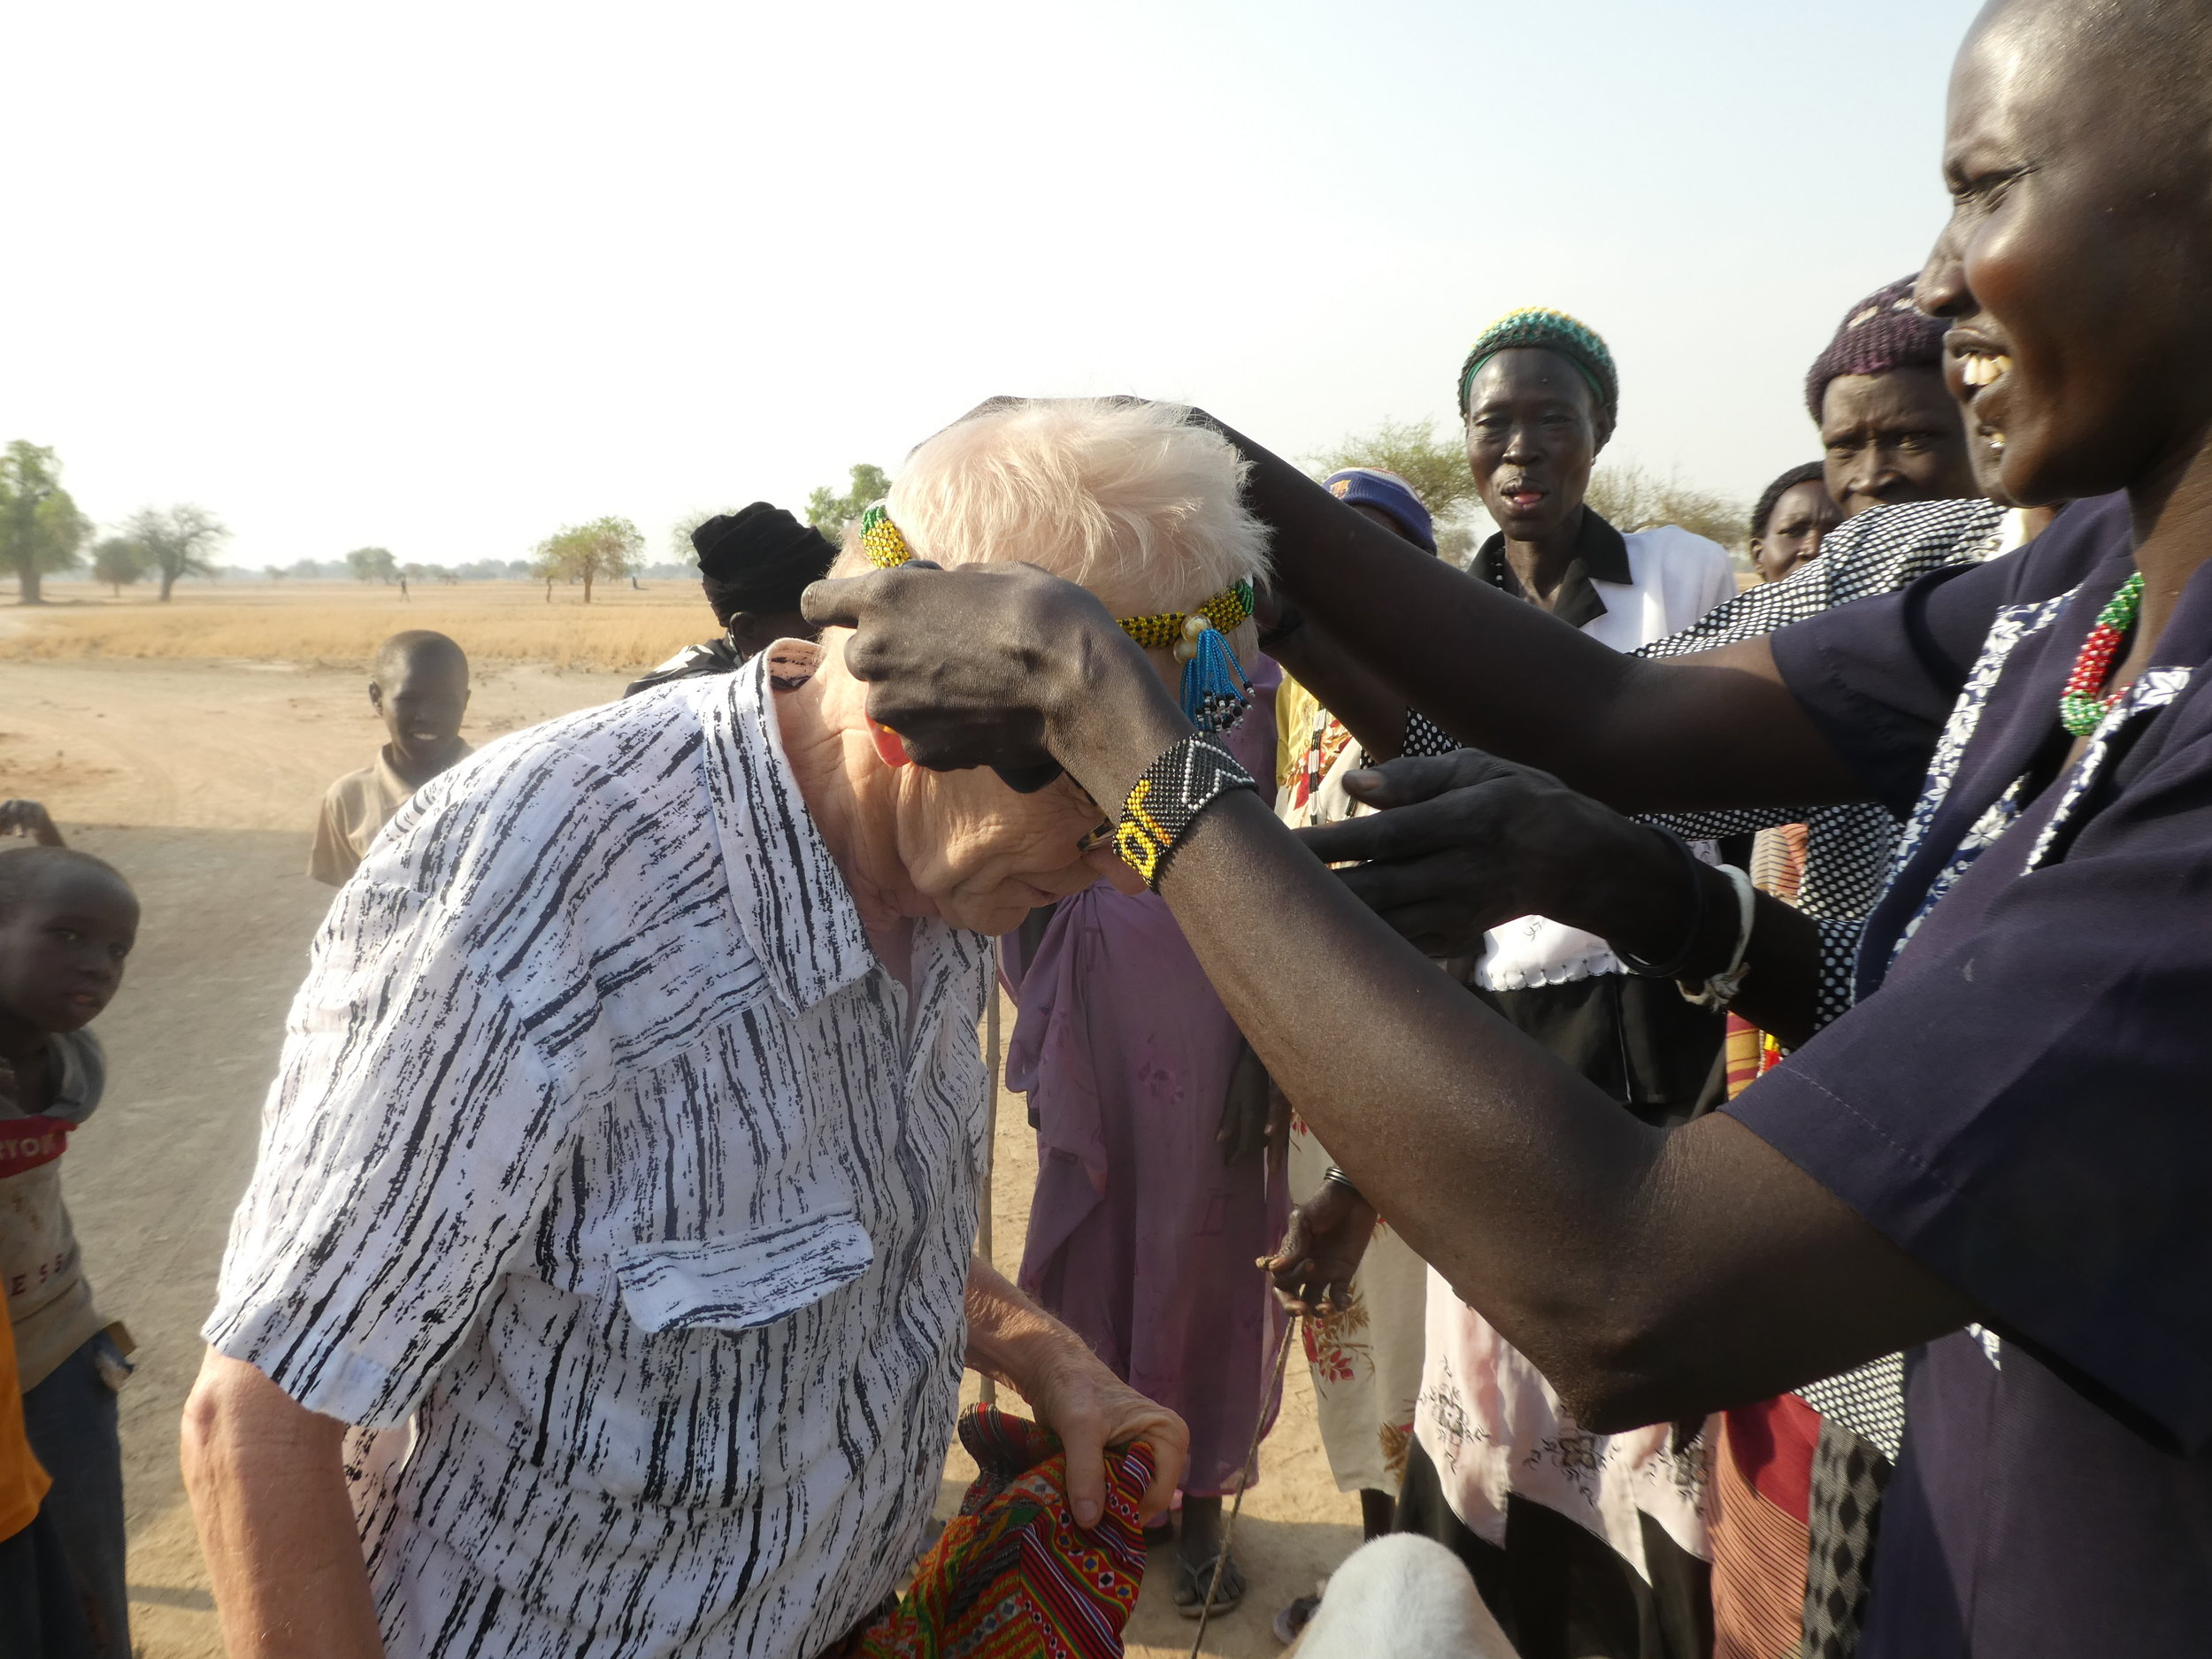 Bill receiving a beaded necklace from one of the mothers whose daughter will be attending school in South Sudan.